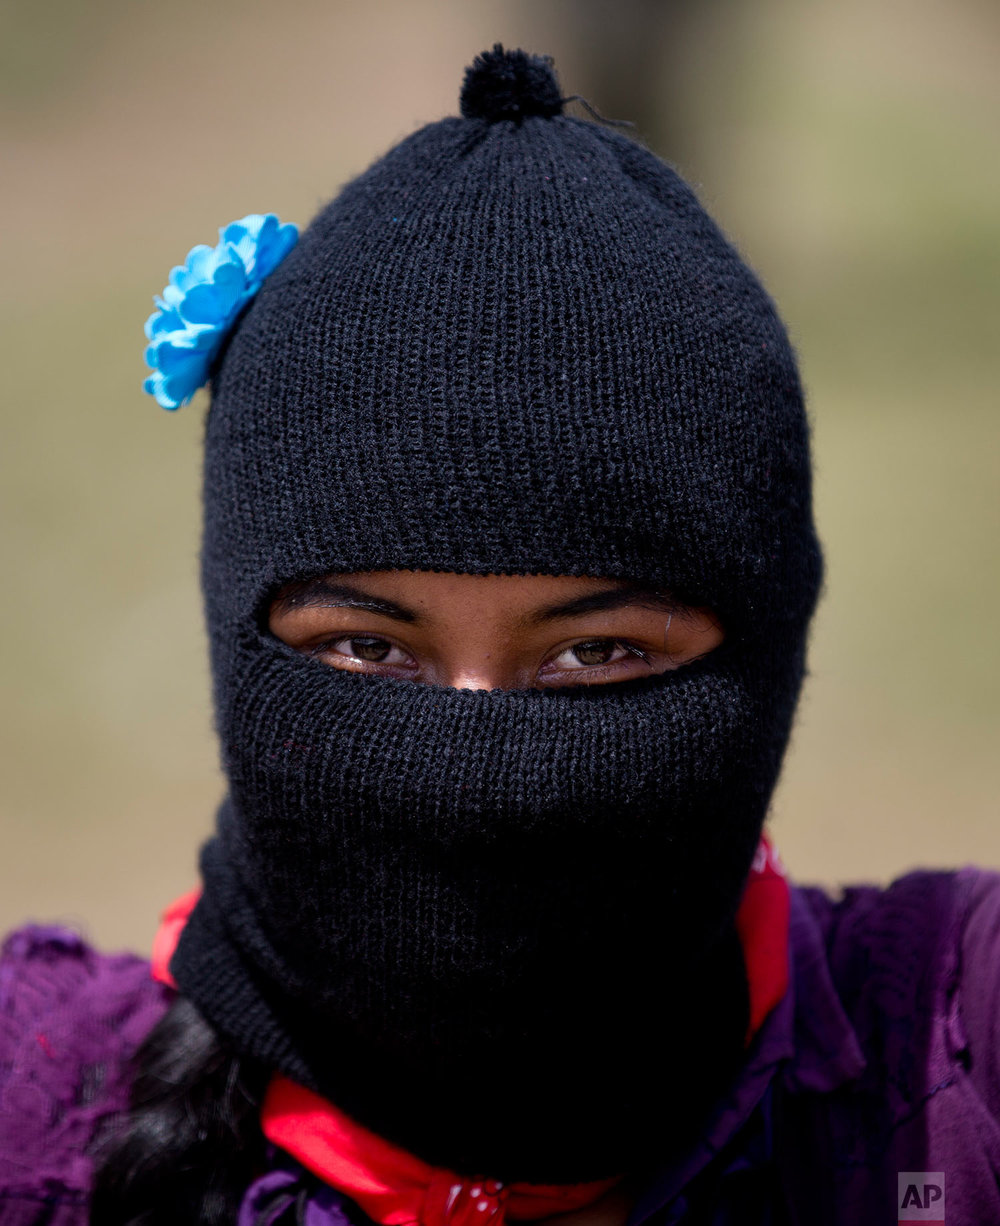 In this Saturday, Oct. 14, 2017 photo, a young woman wearing a mask decorated with a blue flower waits for the arrival of Maria de Jesus Patricio, presidential candidate for the National Indigenous Congress, at a campaign rally in the Zapatista stronghold of Guadalupe Tepeyac in the southern state of Chiapas, Mexico. (AP Photo/Eduardo Verdugo)